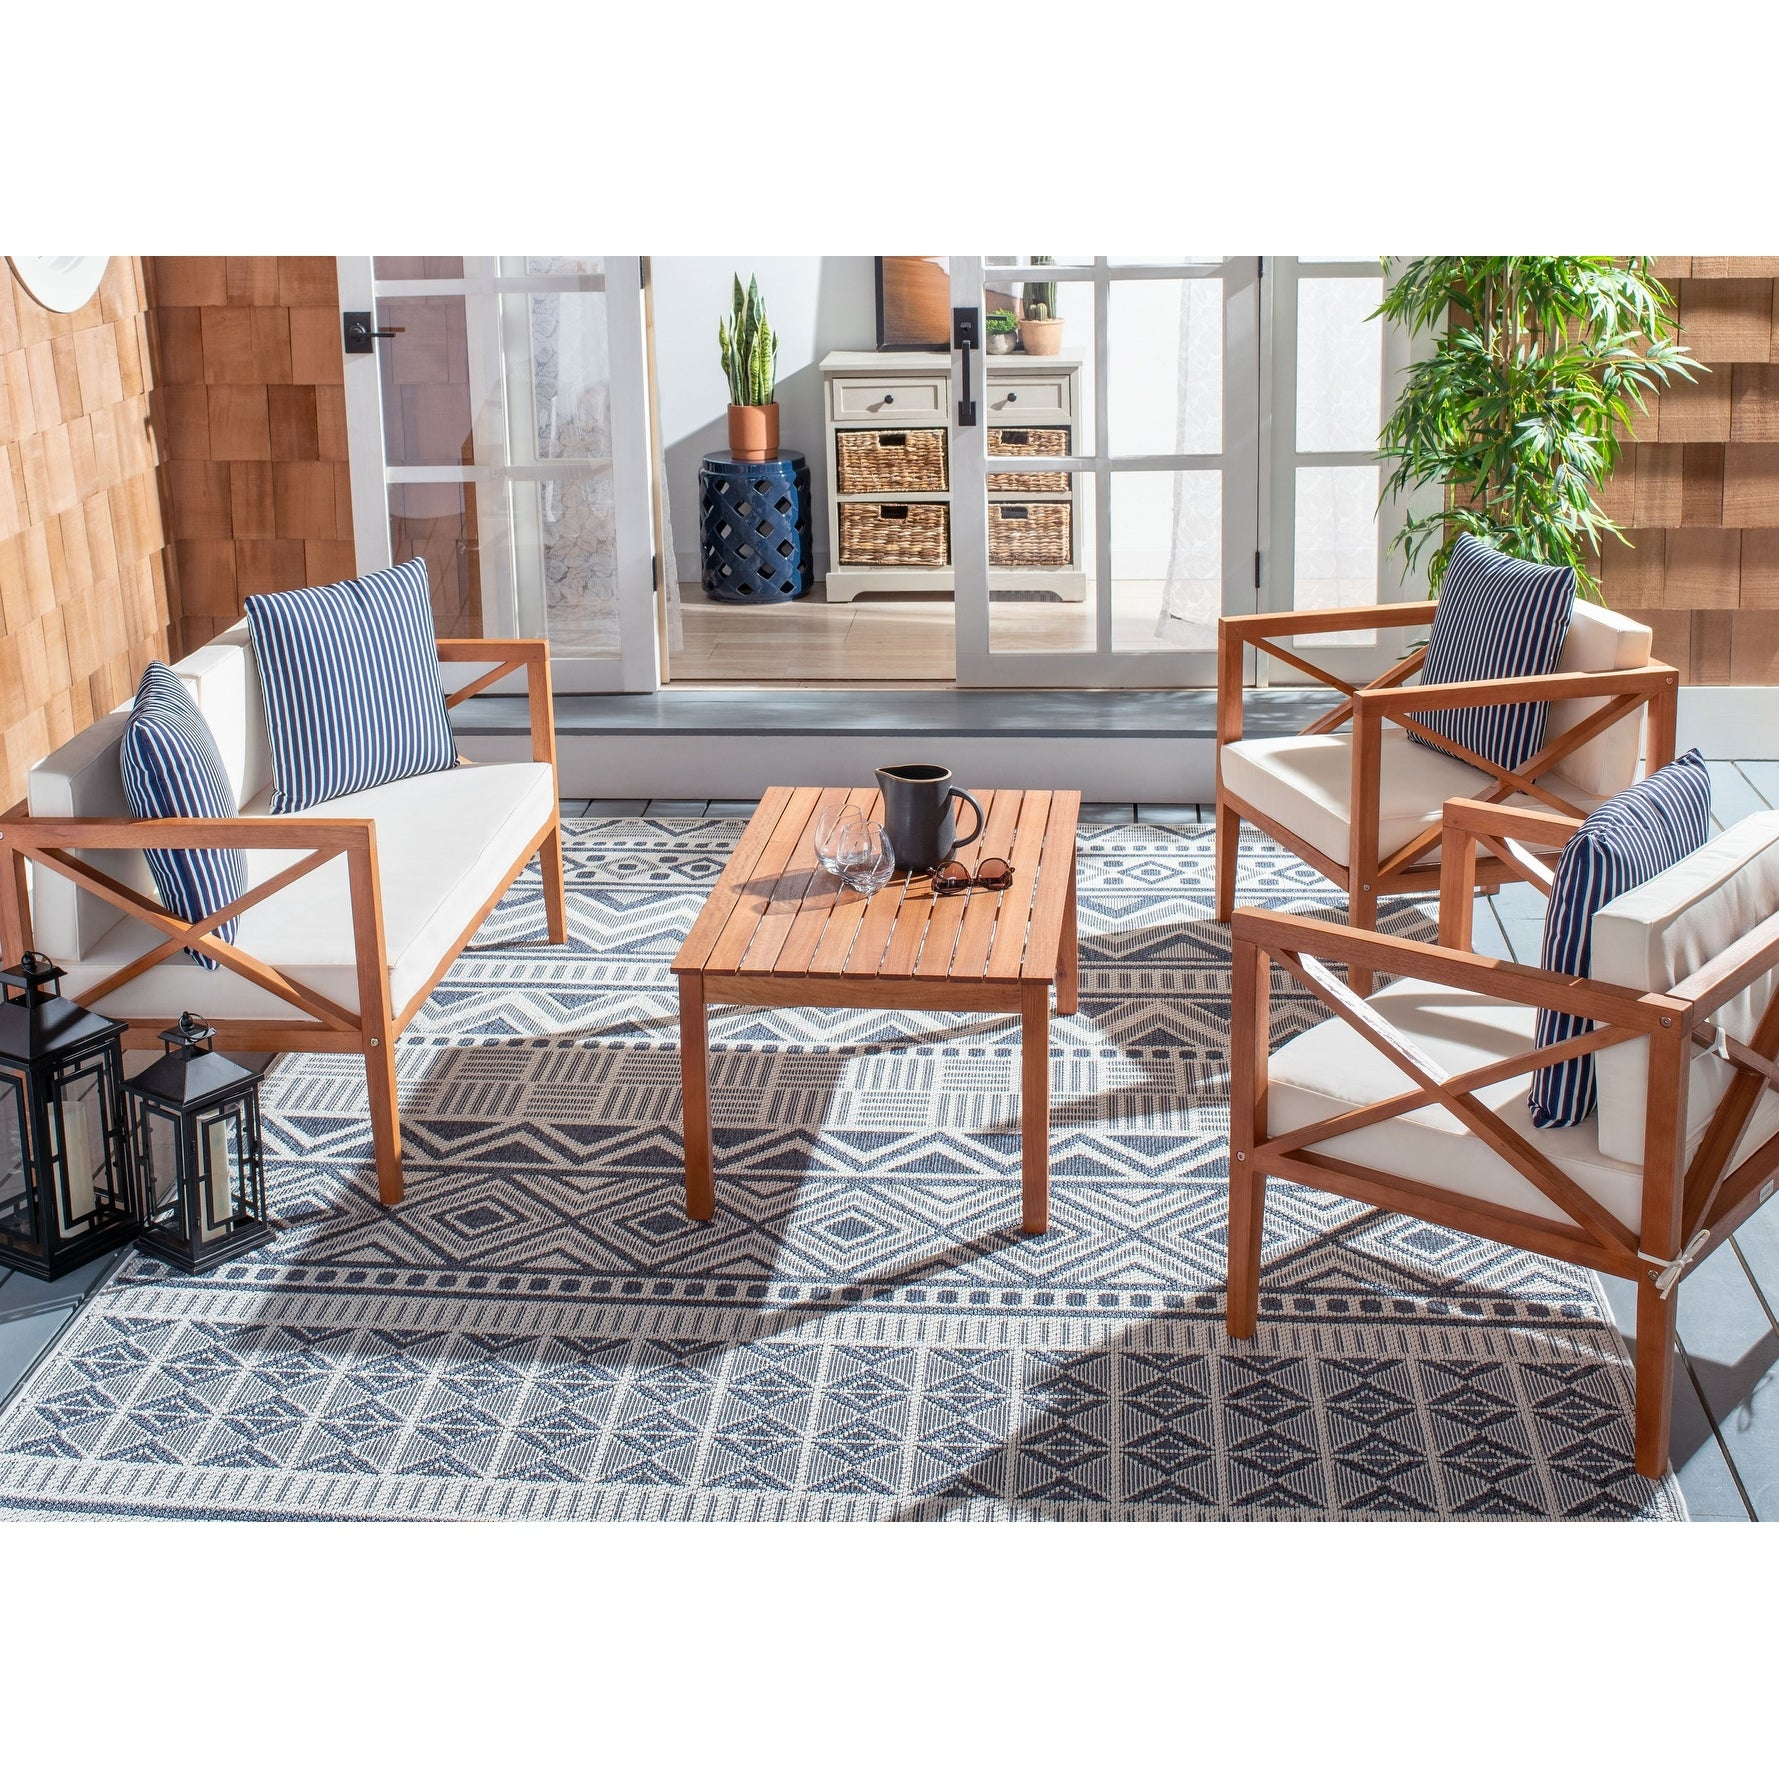 Safavieh Outdoor Living Montez 4 Piece Set with Accent | eBay on Safavieh Outdoor Living Montez 4 Piece Set id=37006